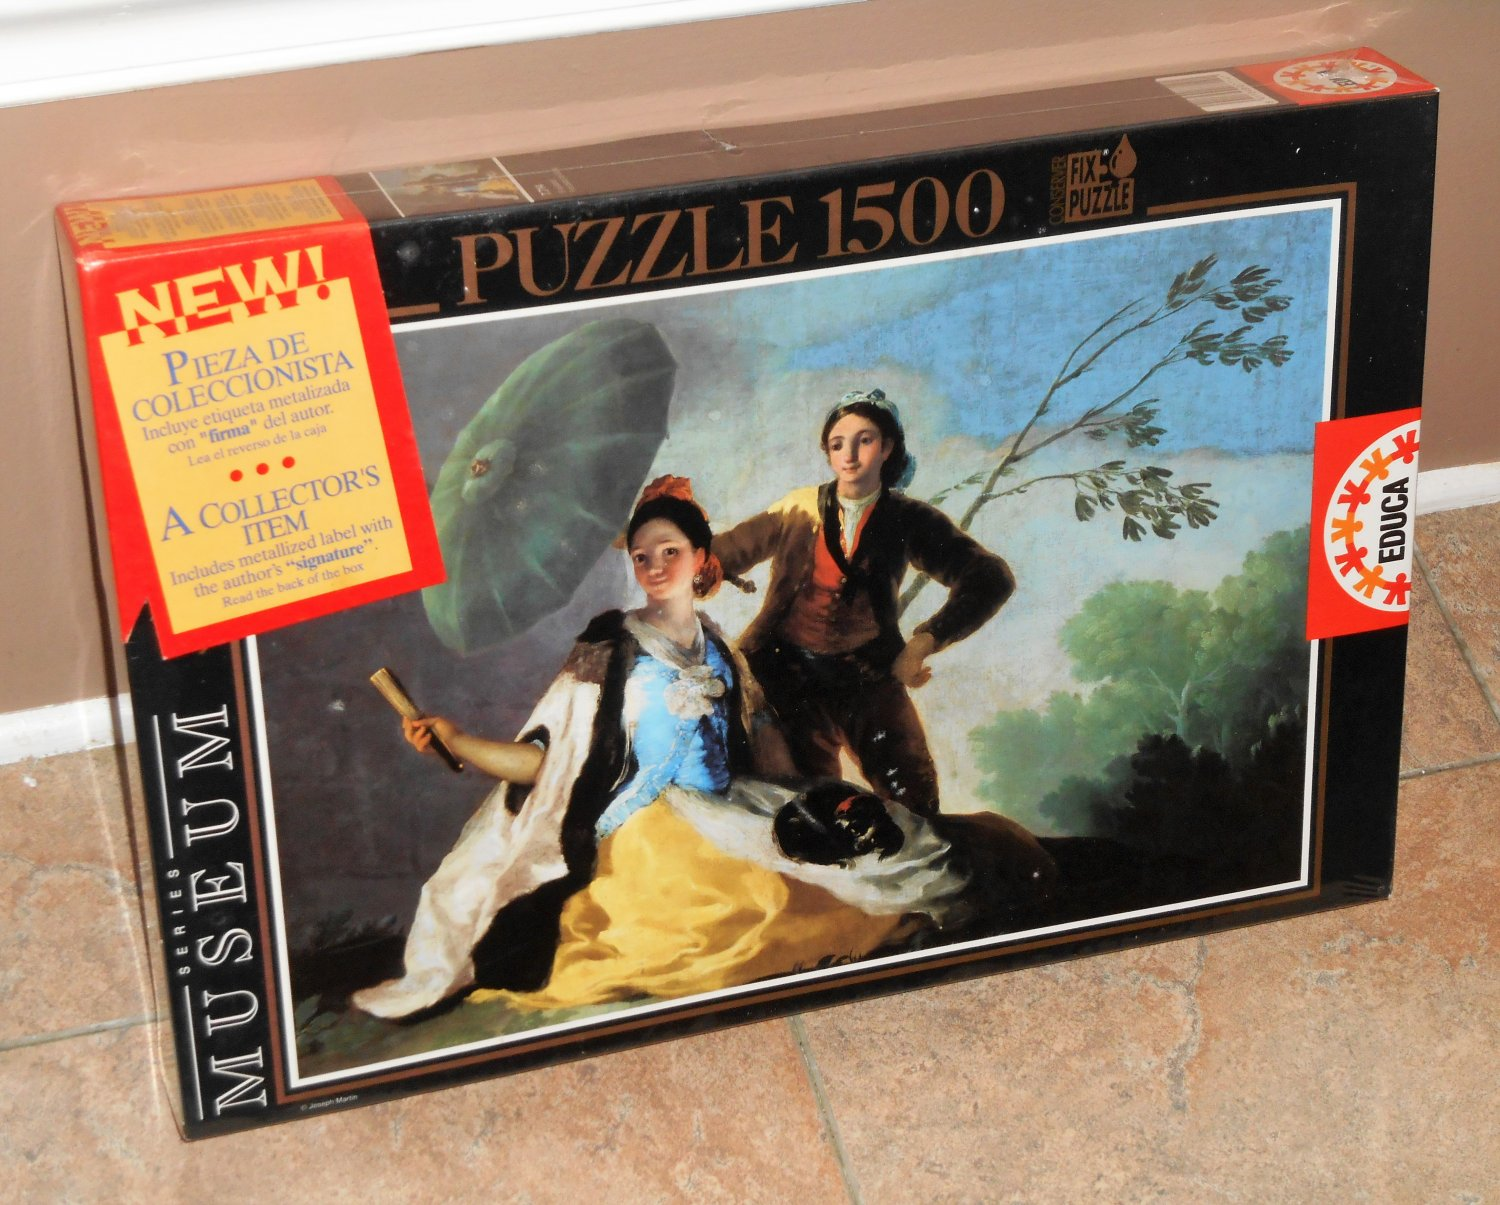 El Quitasol The Parasol 1500 Piece Jigsaw Puzzle 7714 Educa Museum Series Francisco de Goya NIB